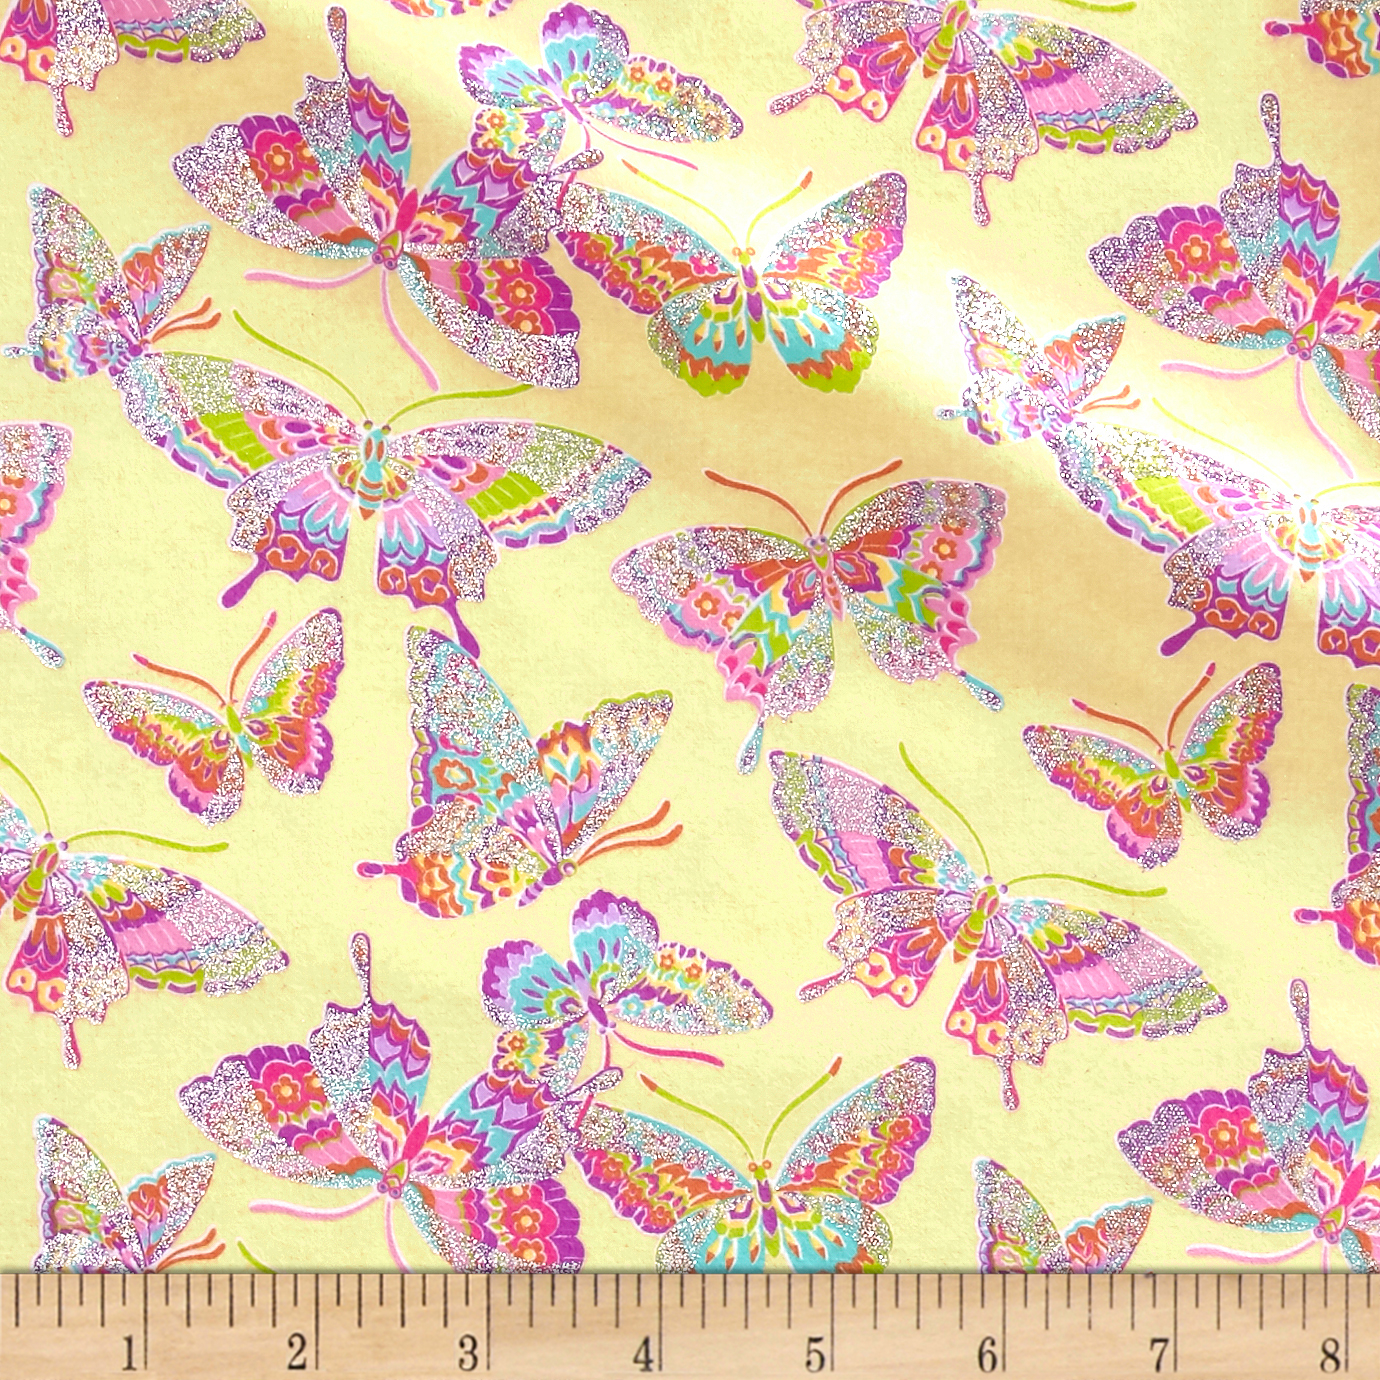 Pizzaz Flannel Glitter Butterflies Yellow Fabric by Fabric Traditions in USA